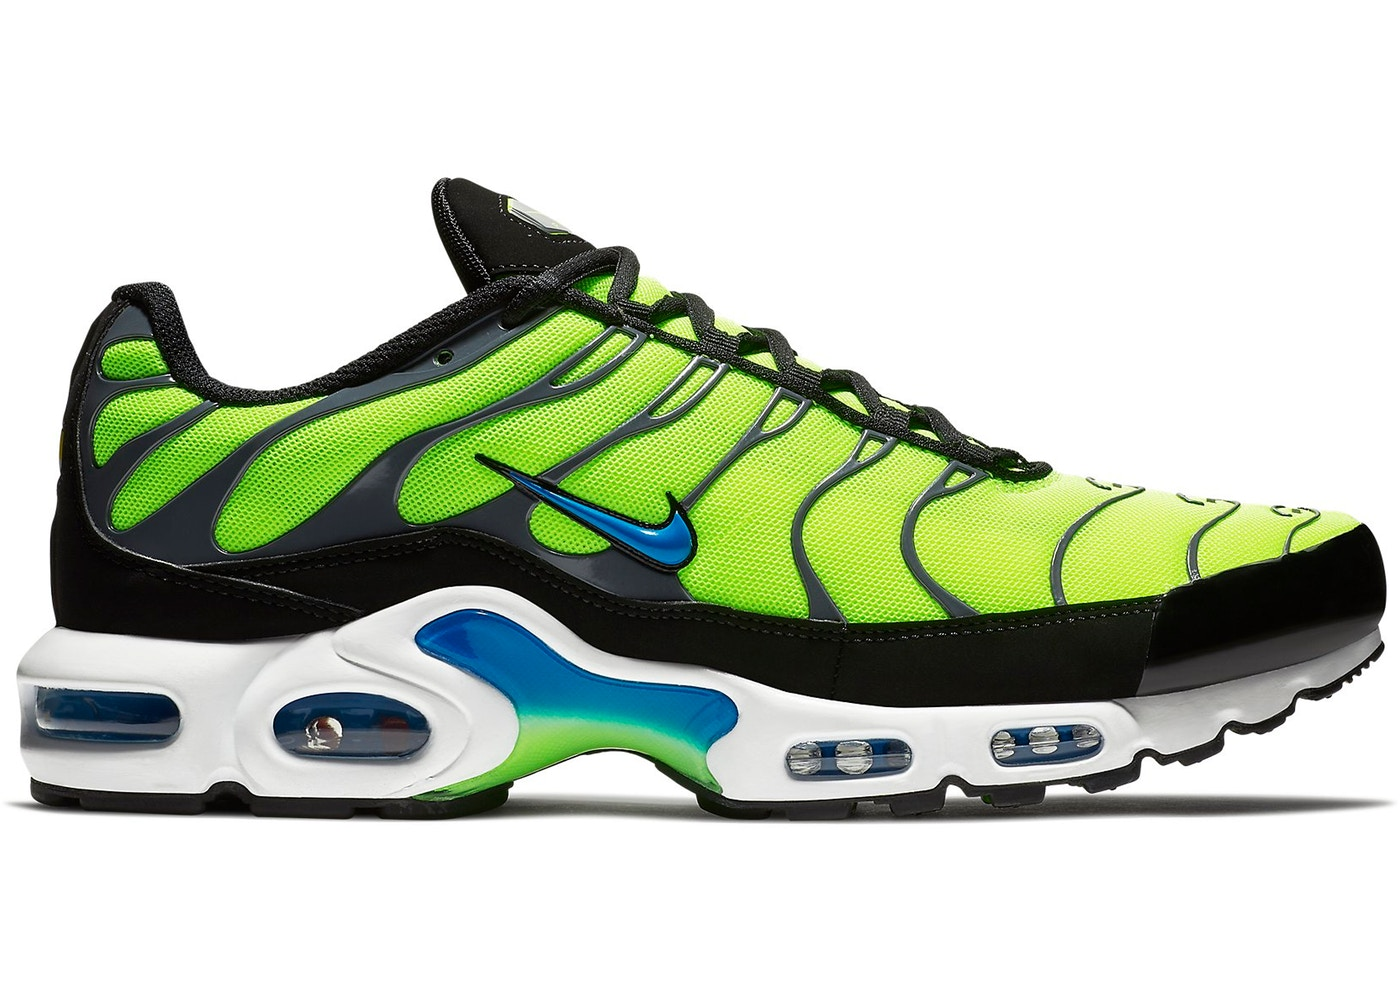 huge discount 14d8f 3b463 Air Max Plus Scream Green - 852630-700